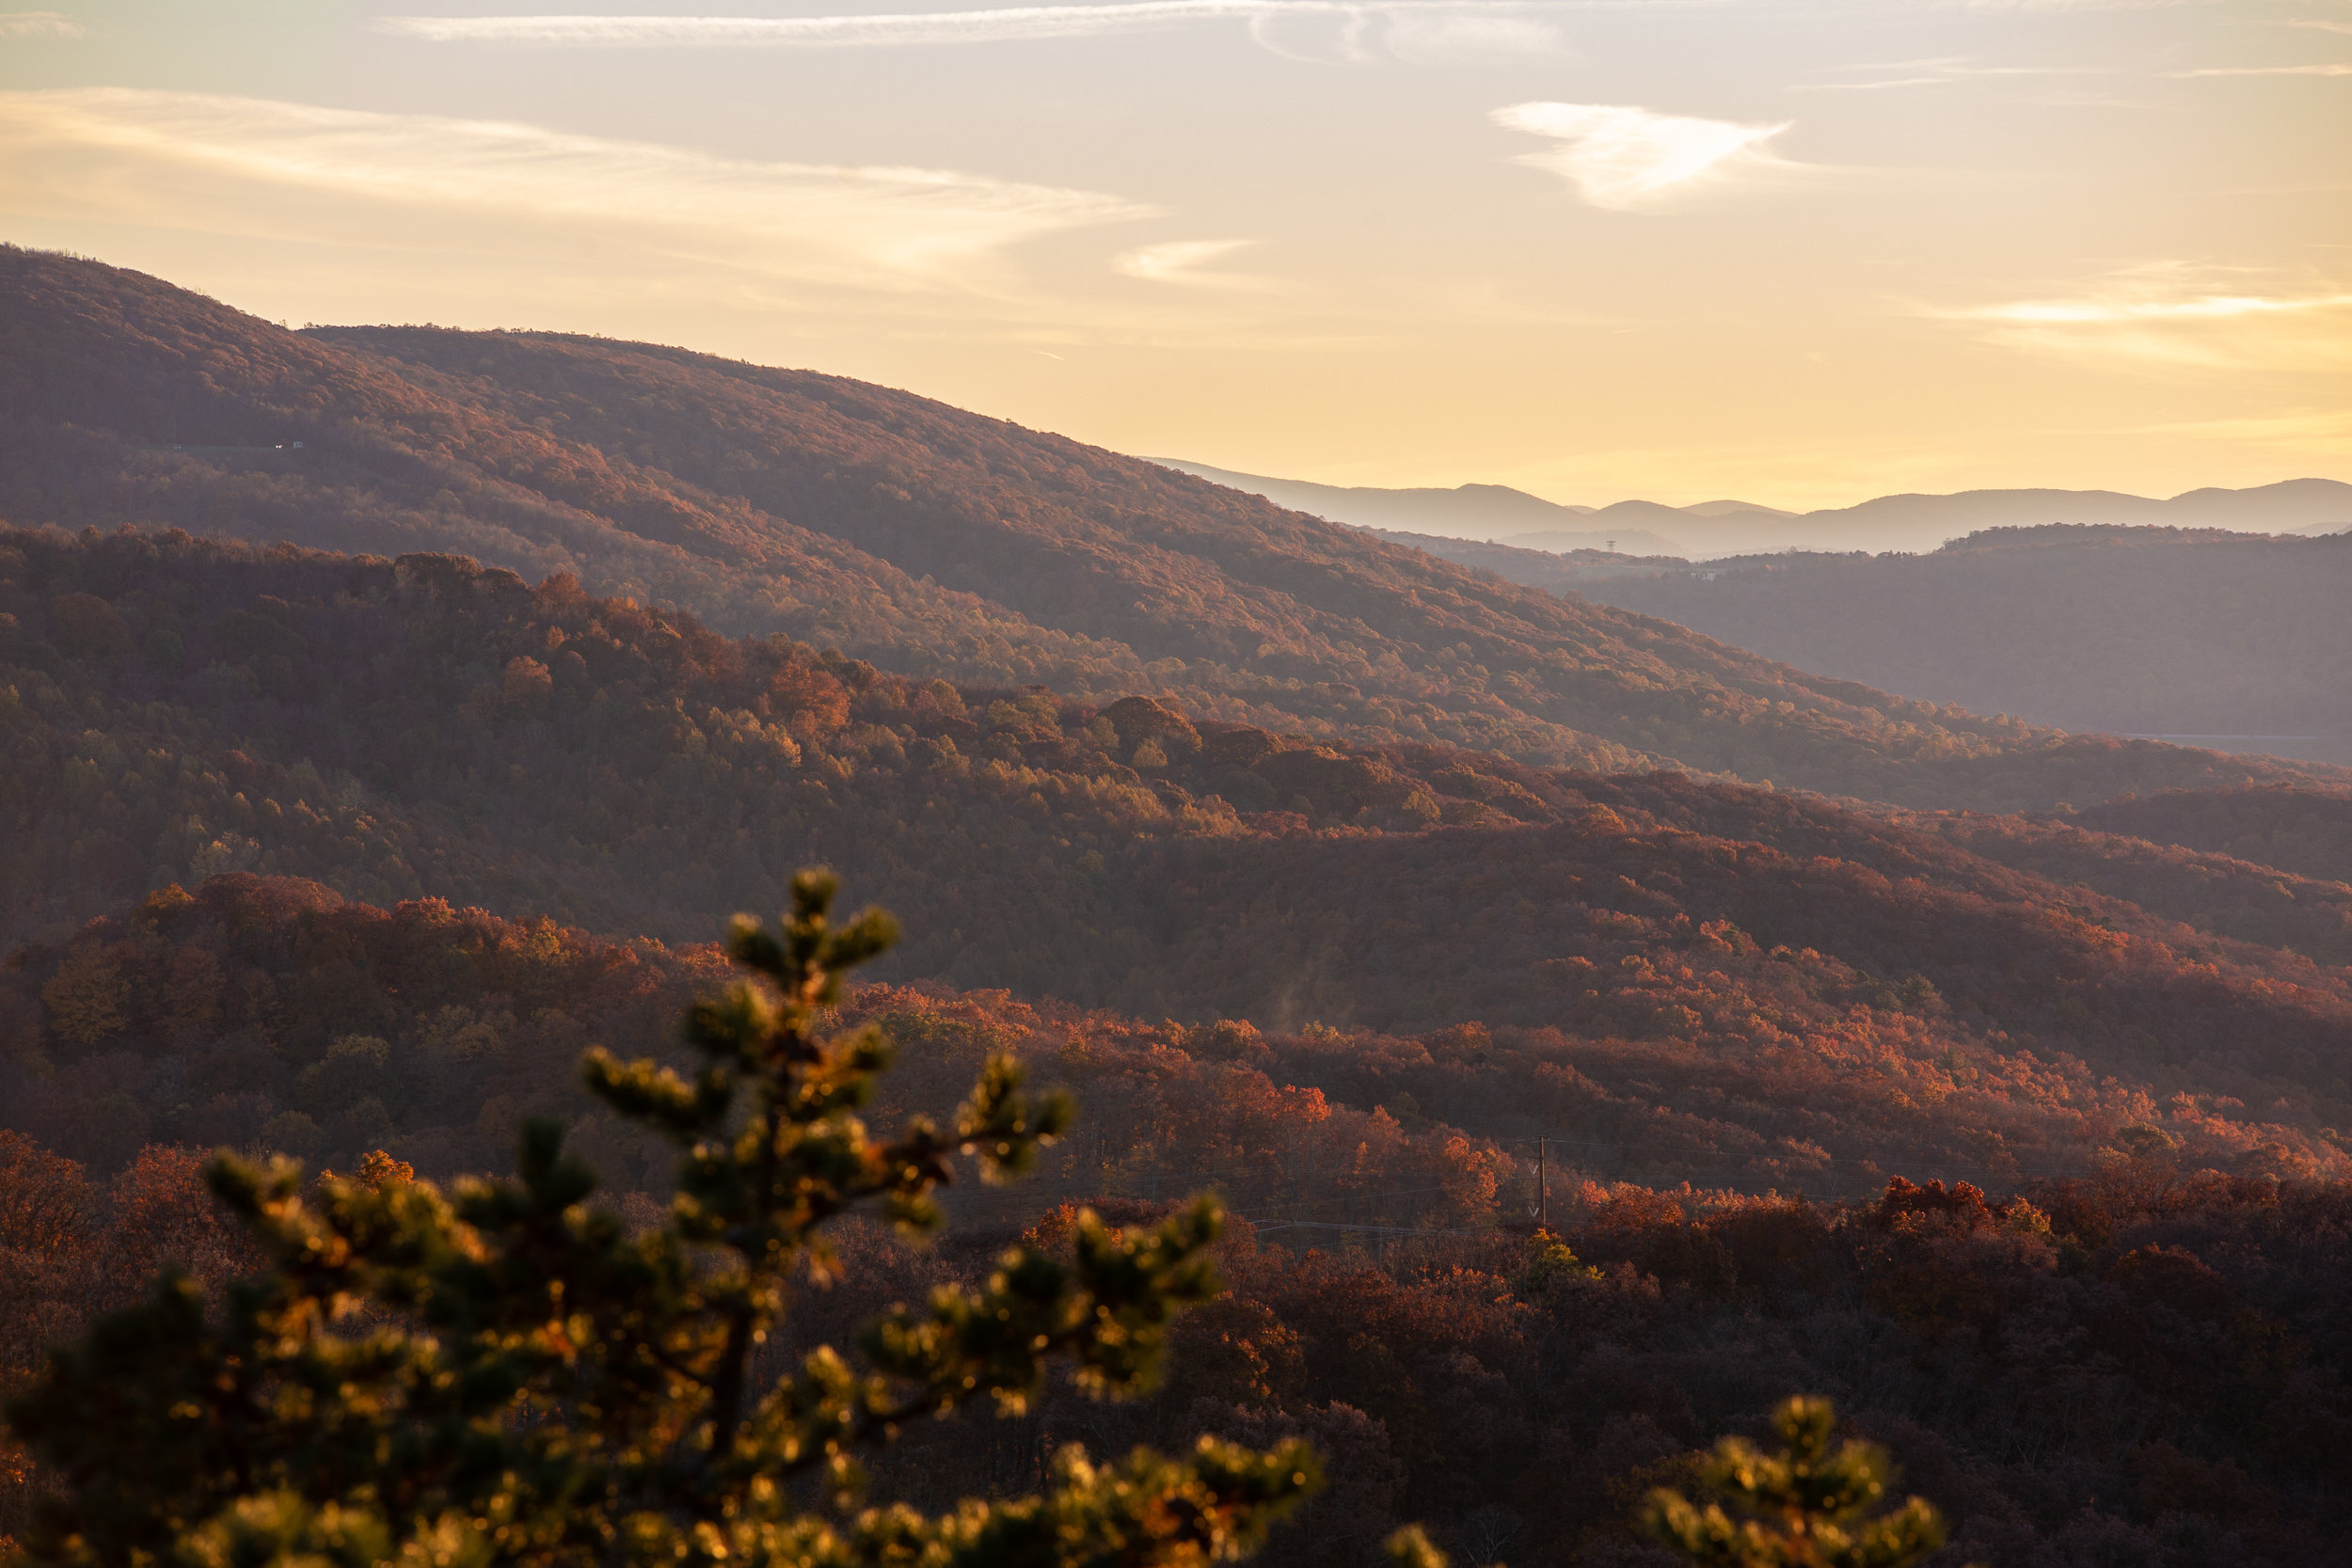 Shenandoah-National-Park-blue-ridge-parkway-day-mountains-afternoon-haze-layers-distance-texture-trees-fall-sunset-evening-calm